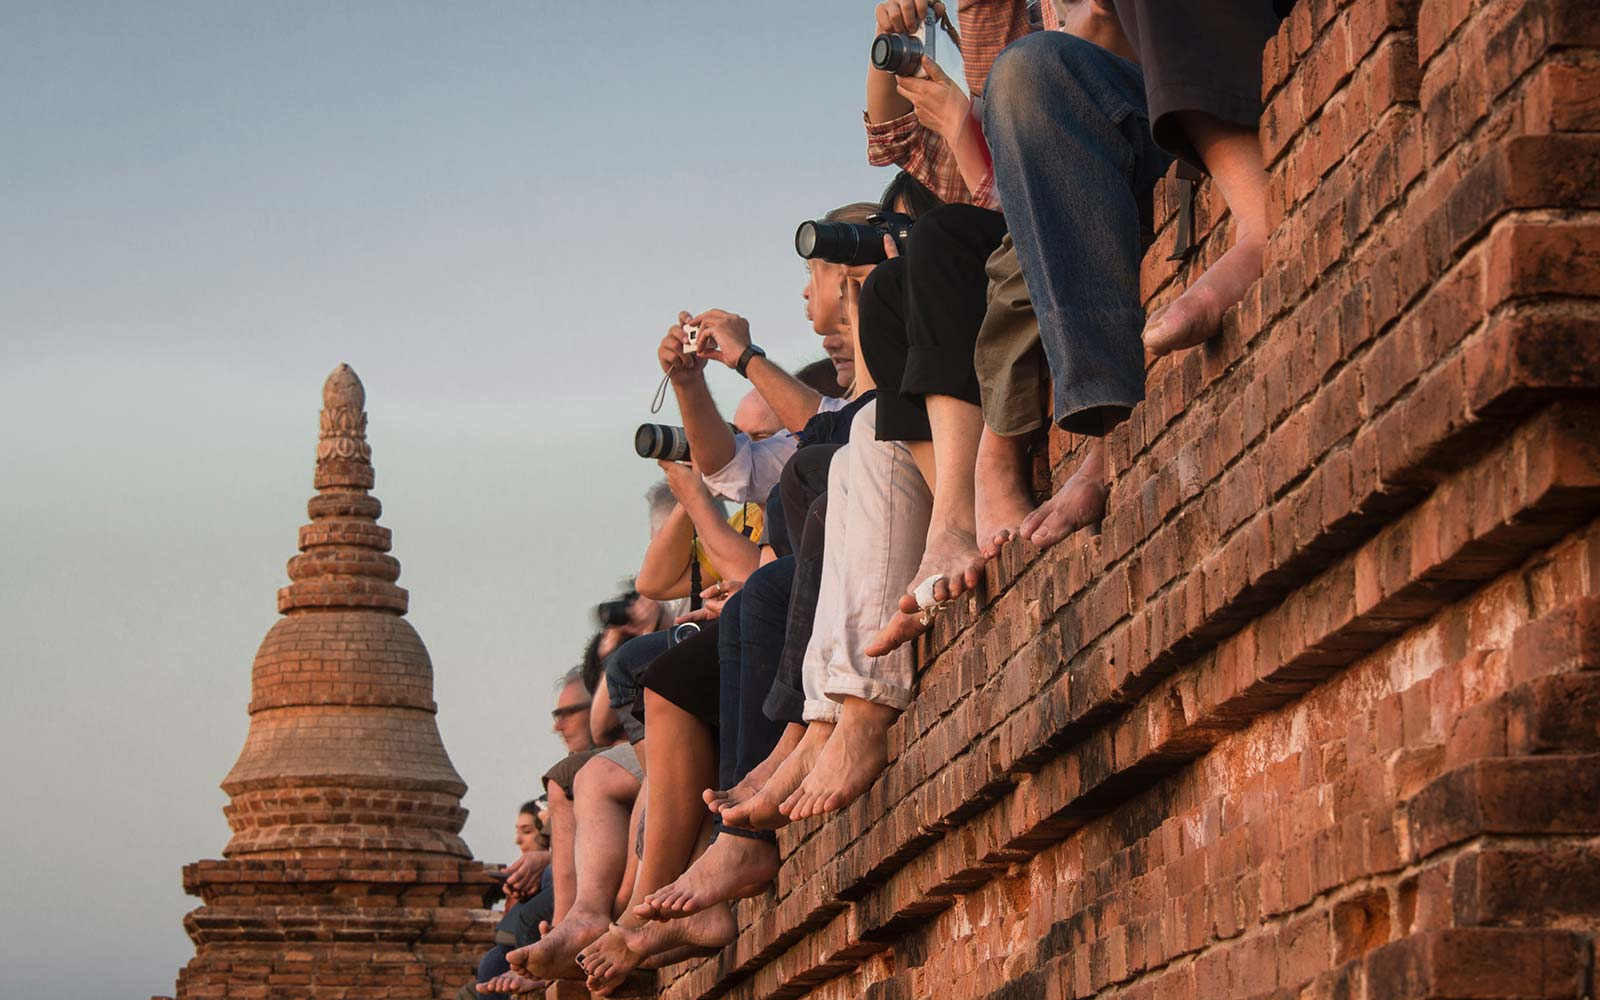 Tourists to Be Banned From Climbing Bagan's Temples to Prevent Damage